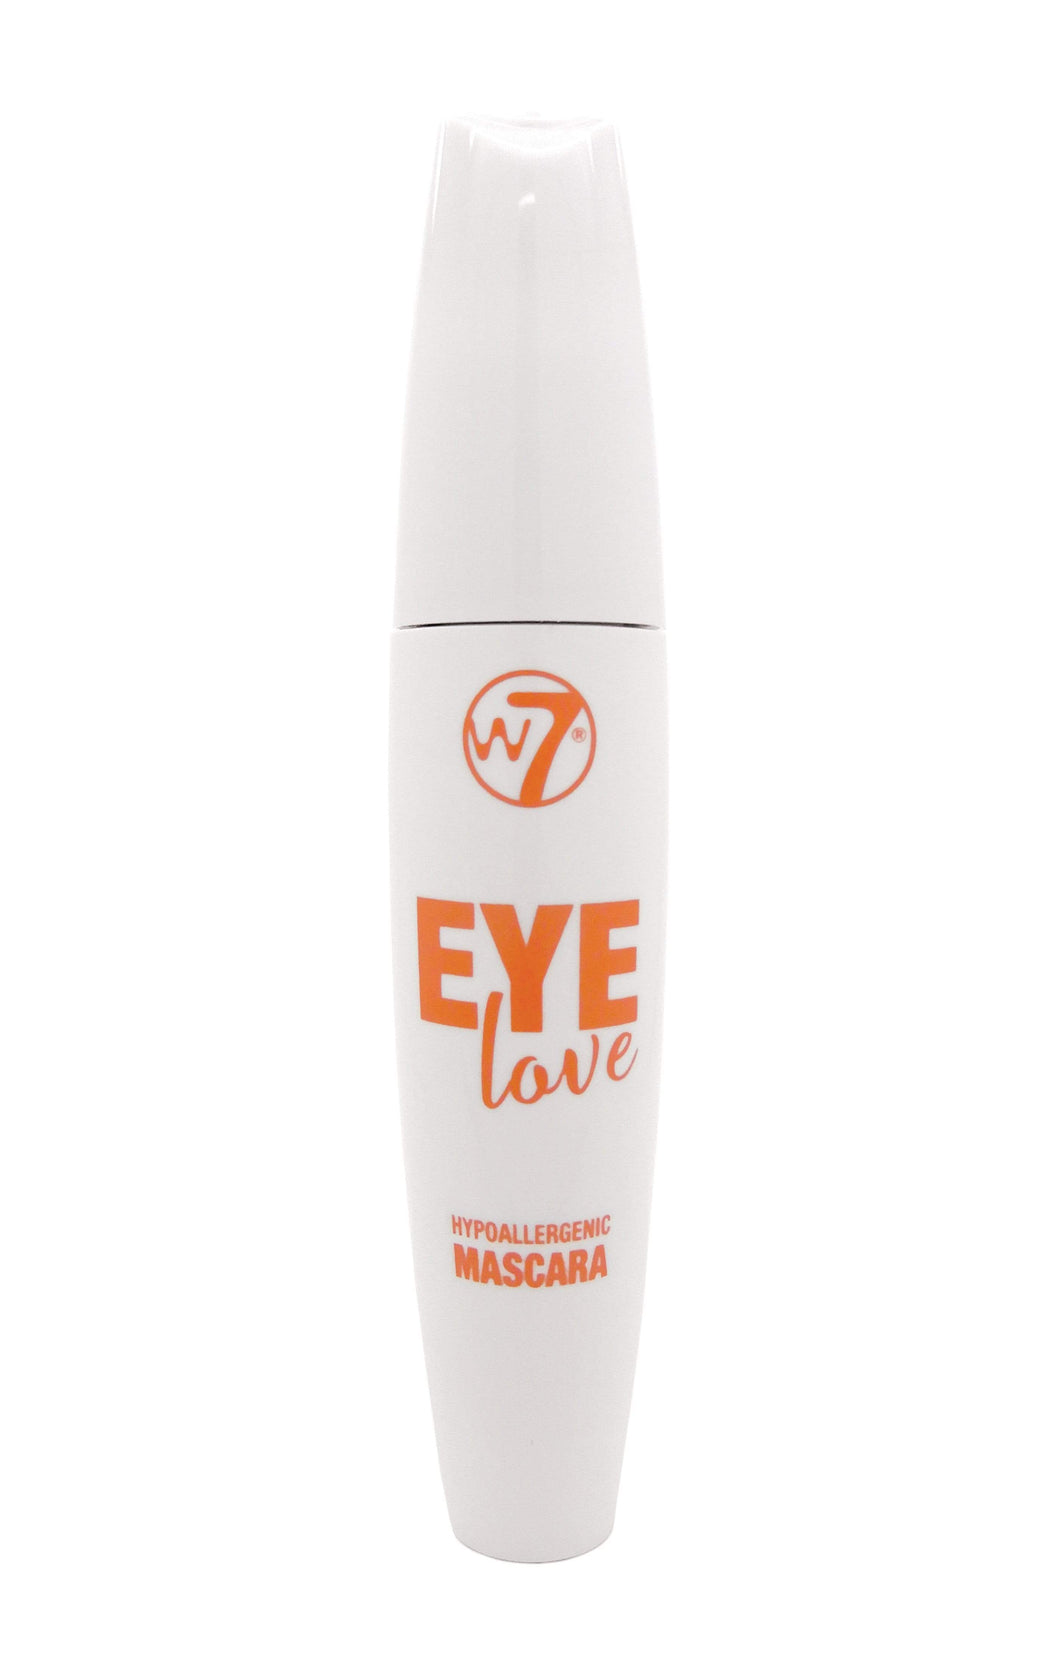 Eye Love Hypoallergenic Mascara